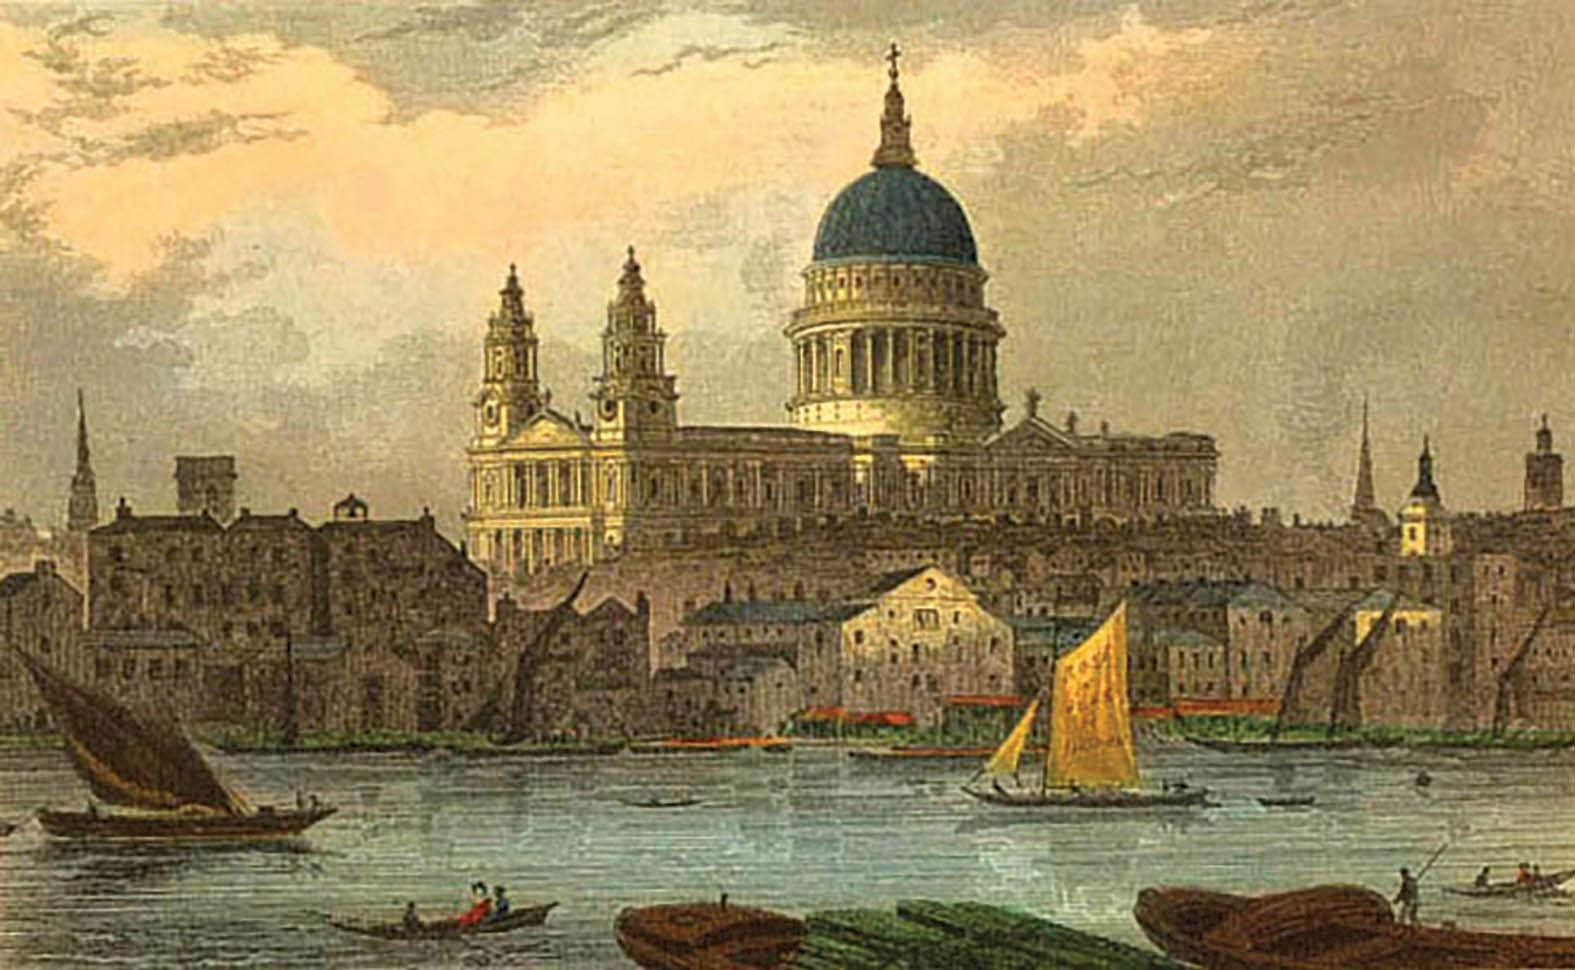 A 19th-century coloured engraving of St Paul's Cathedral by Thomas Hosmer Shepherd.